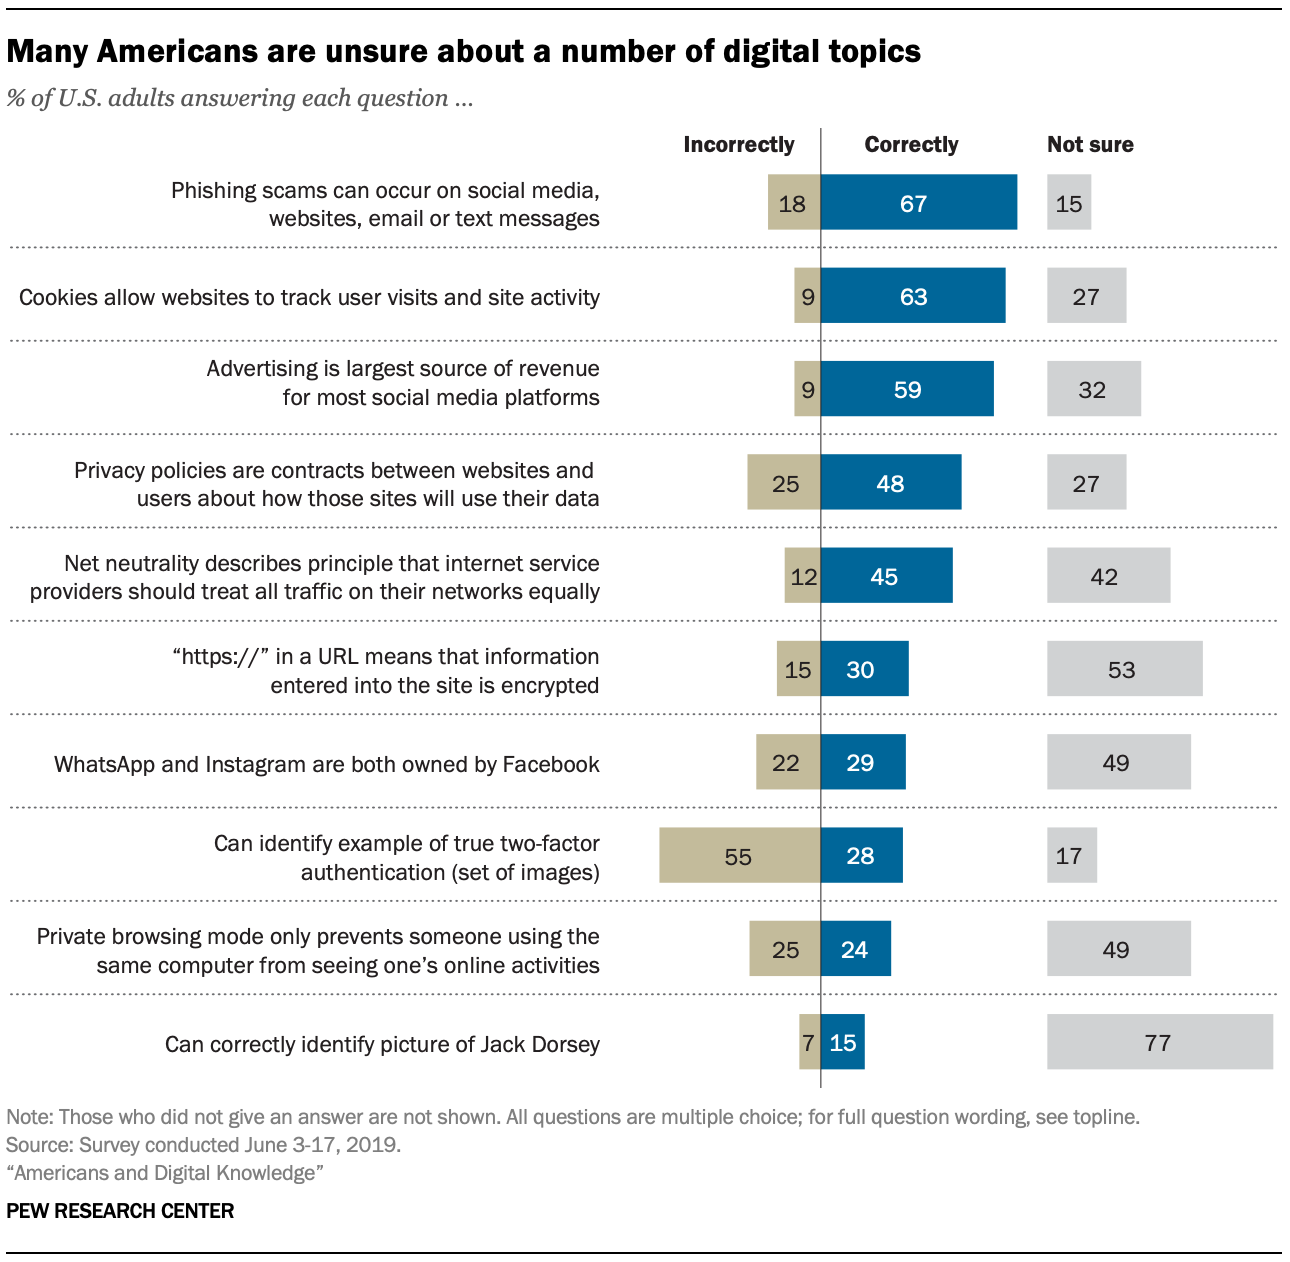 Many Americans are unsure about a number of digital topics